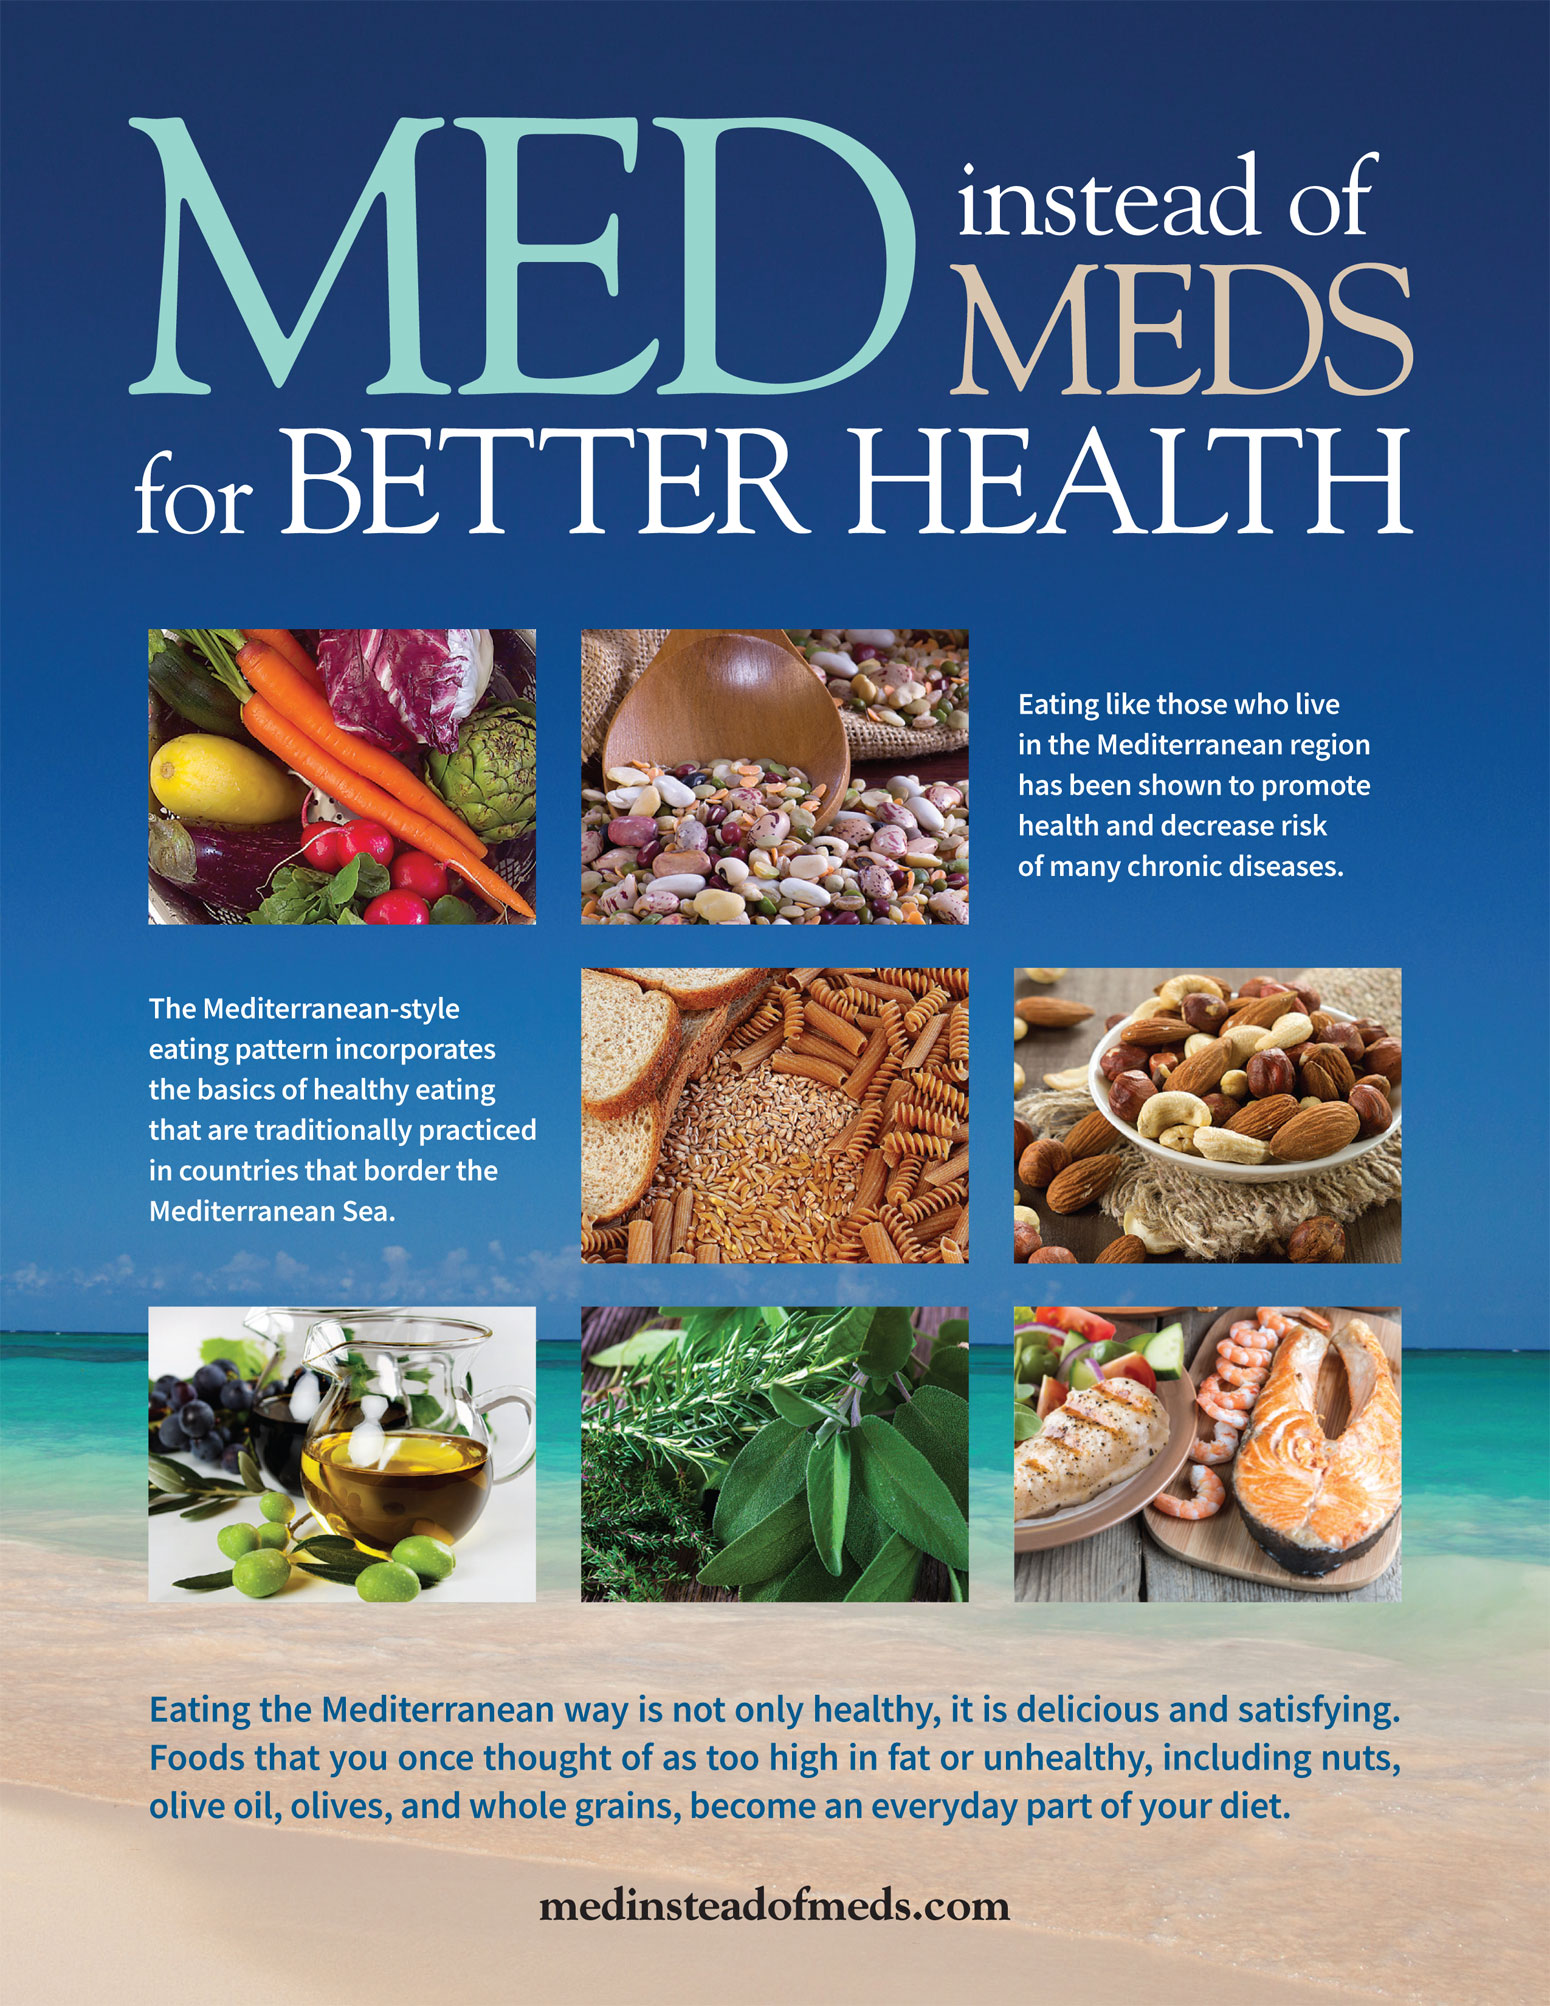 Med Instead of Meds    is a site created by nutrition and health professionals from NC State University & NC Division of Public Health and covers everything you need to know about the Mediterranean Diet as a lifestyle eating plan.